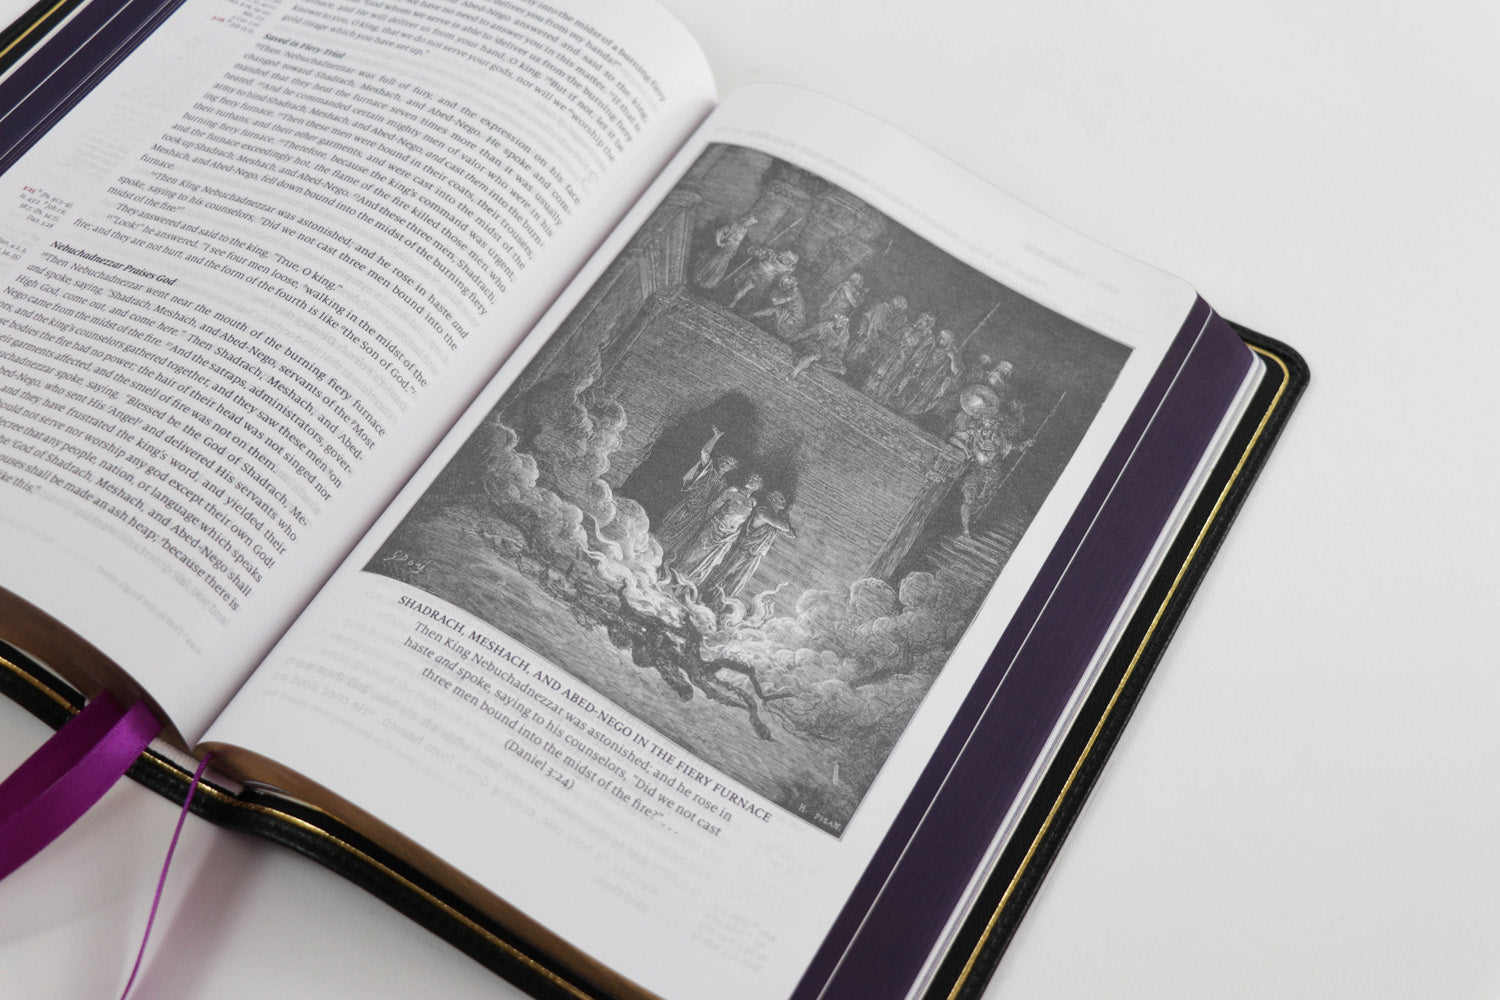 Word of God - Amethyst Edition - Premium Bible with illustrations from Gustave Dore